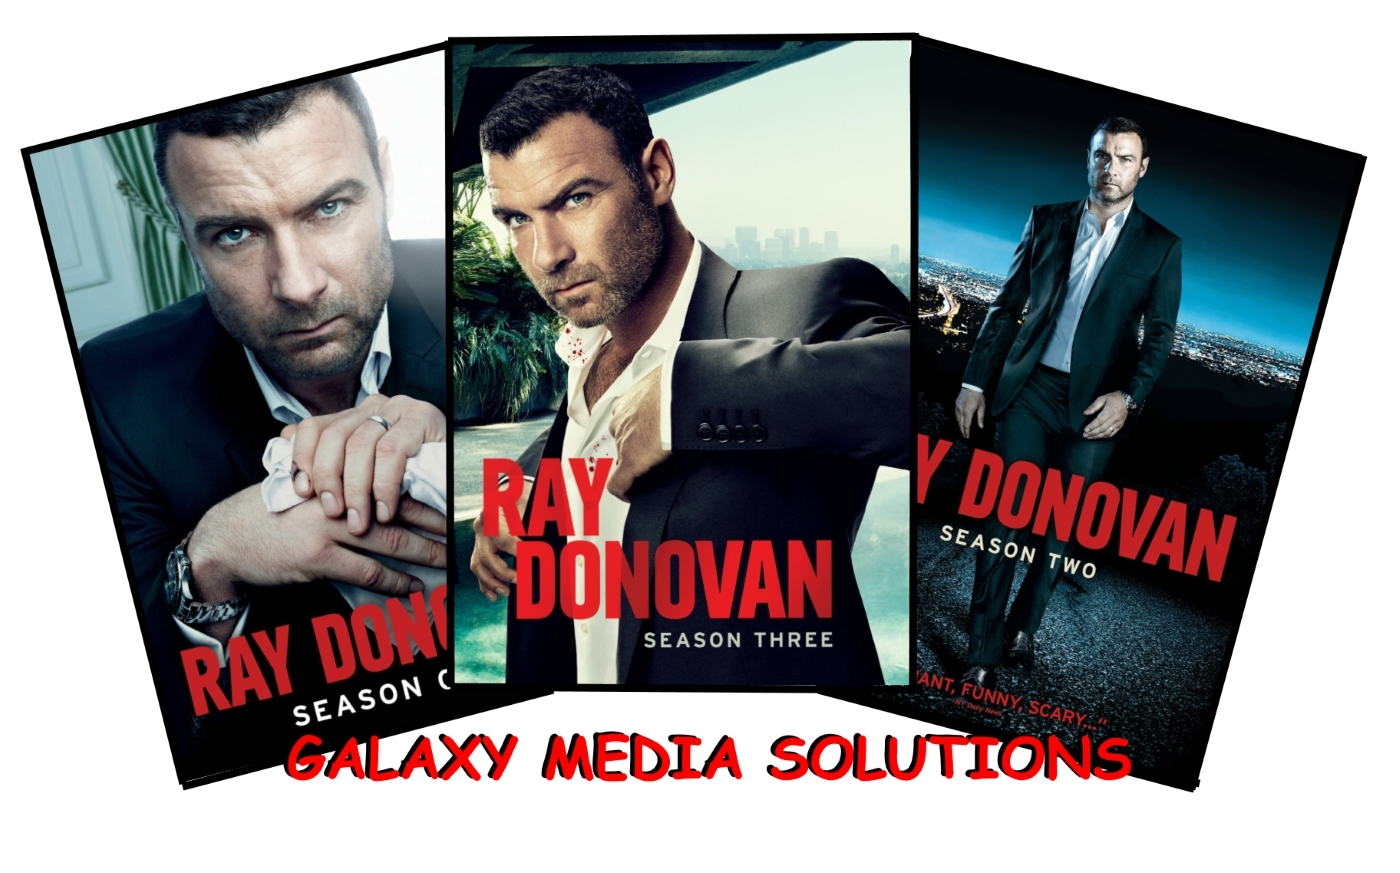 Ray donovan season one three 1 3 bundle  2013 2015 12 dvd  scrieber gould4